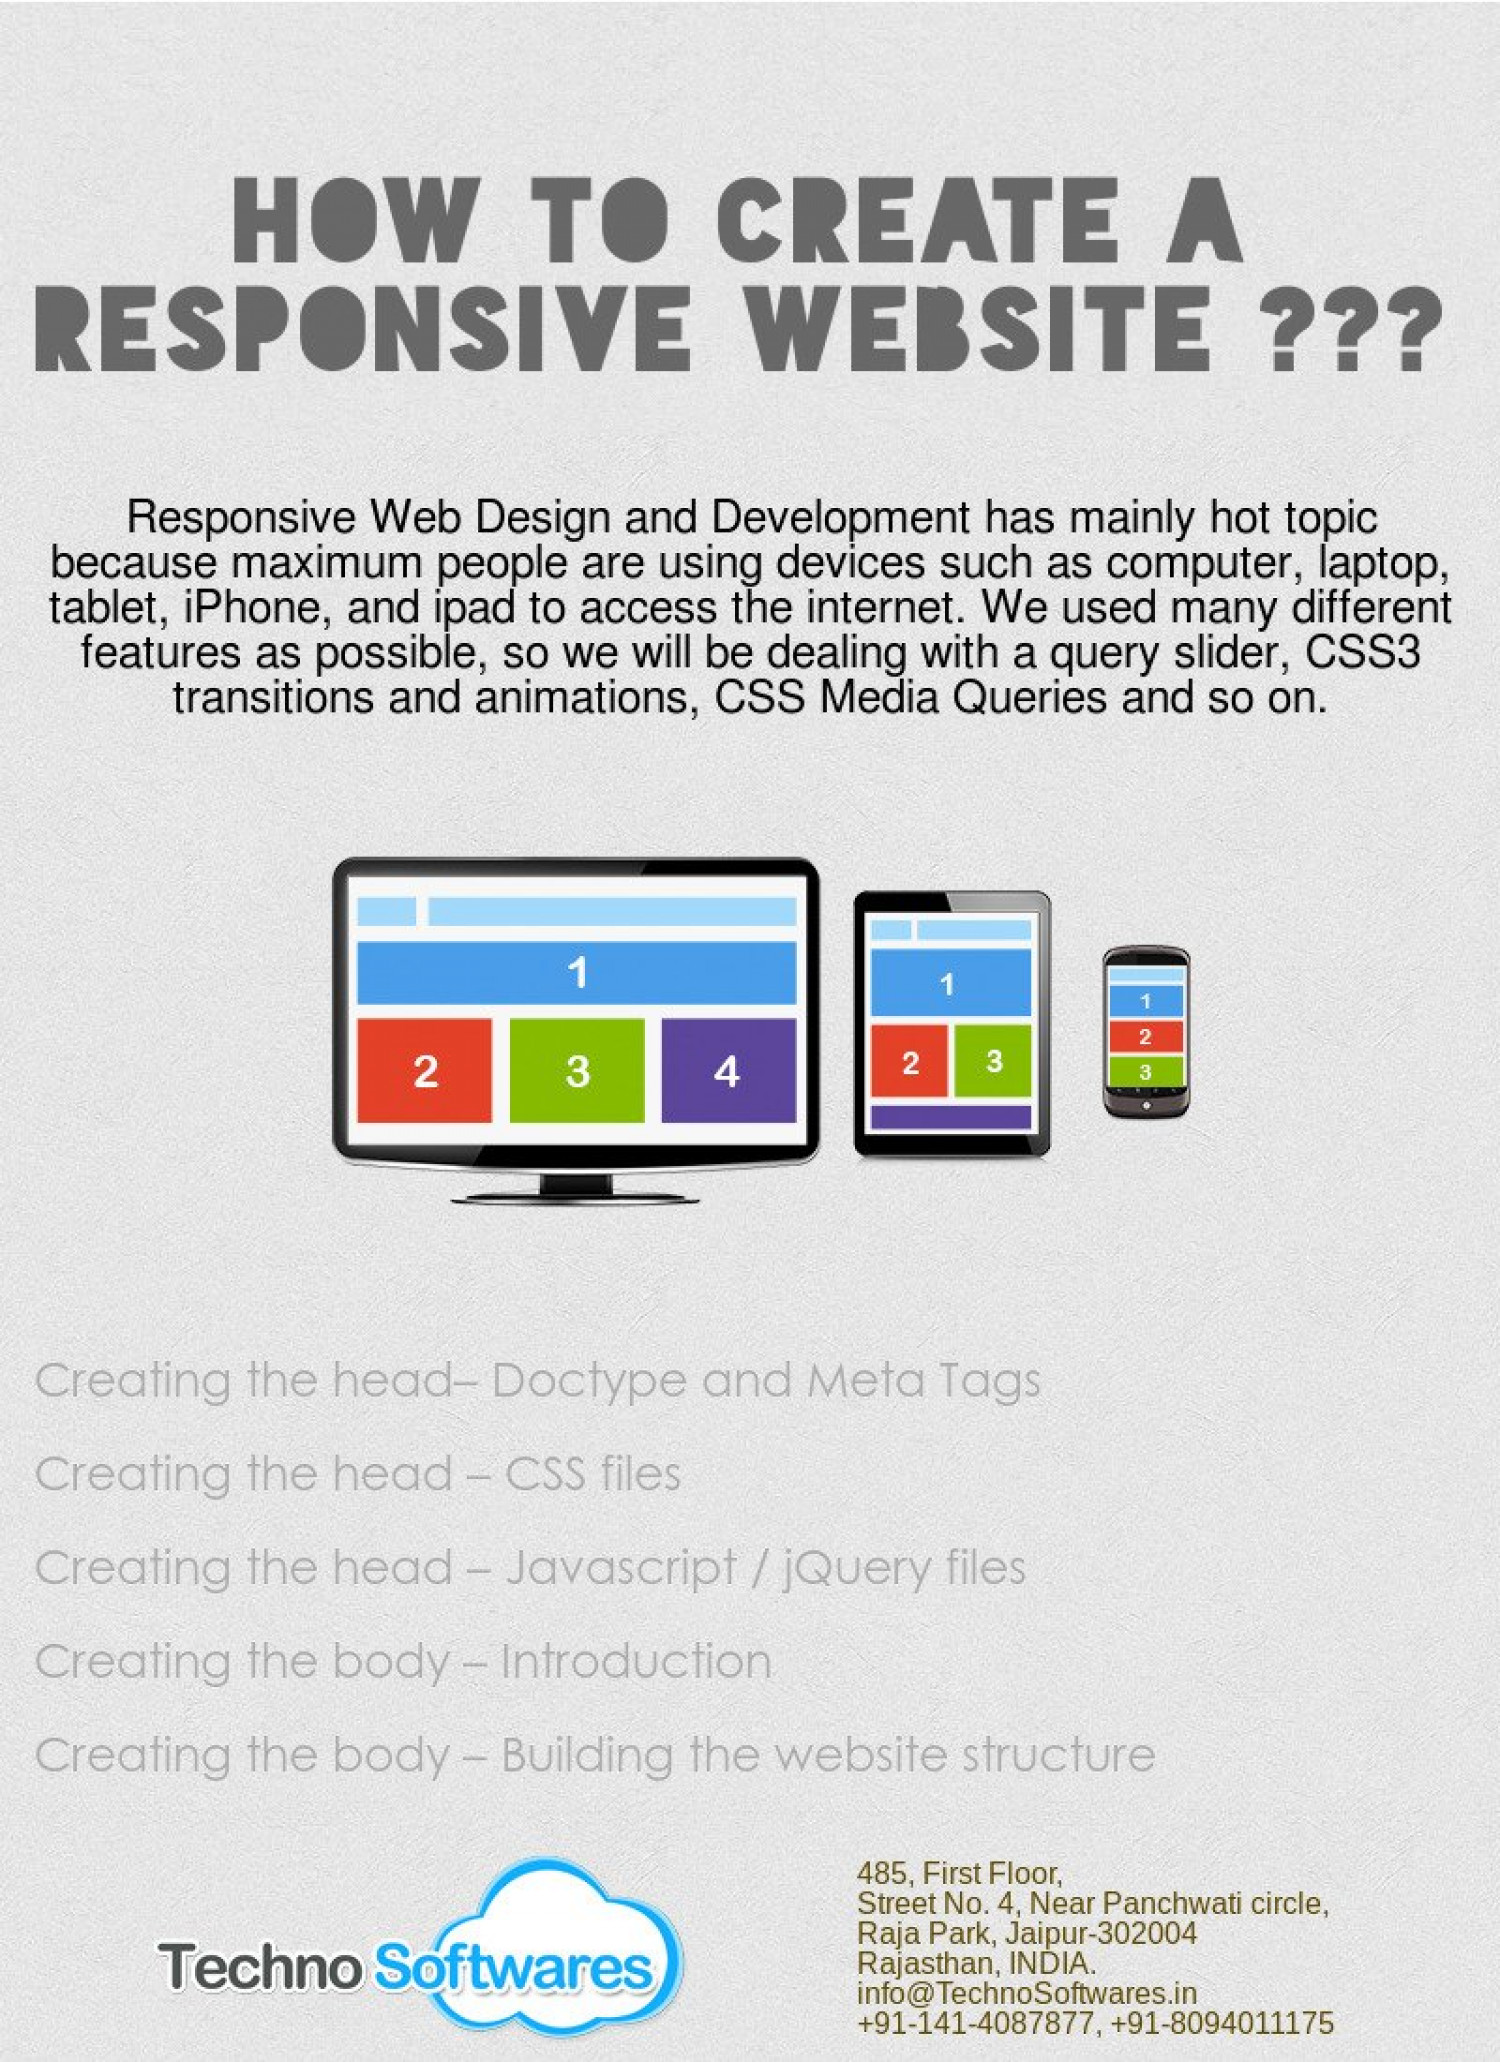 How To Create A Responsive Website Visual Ly